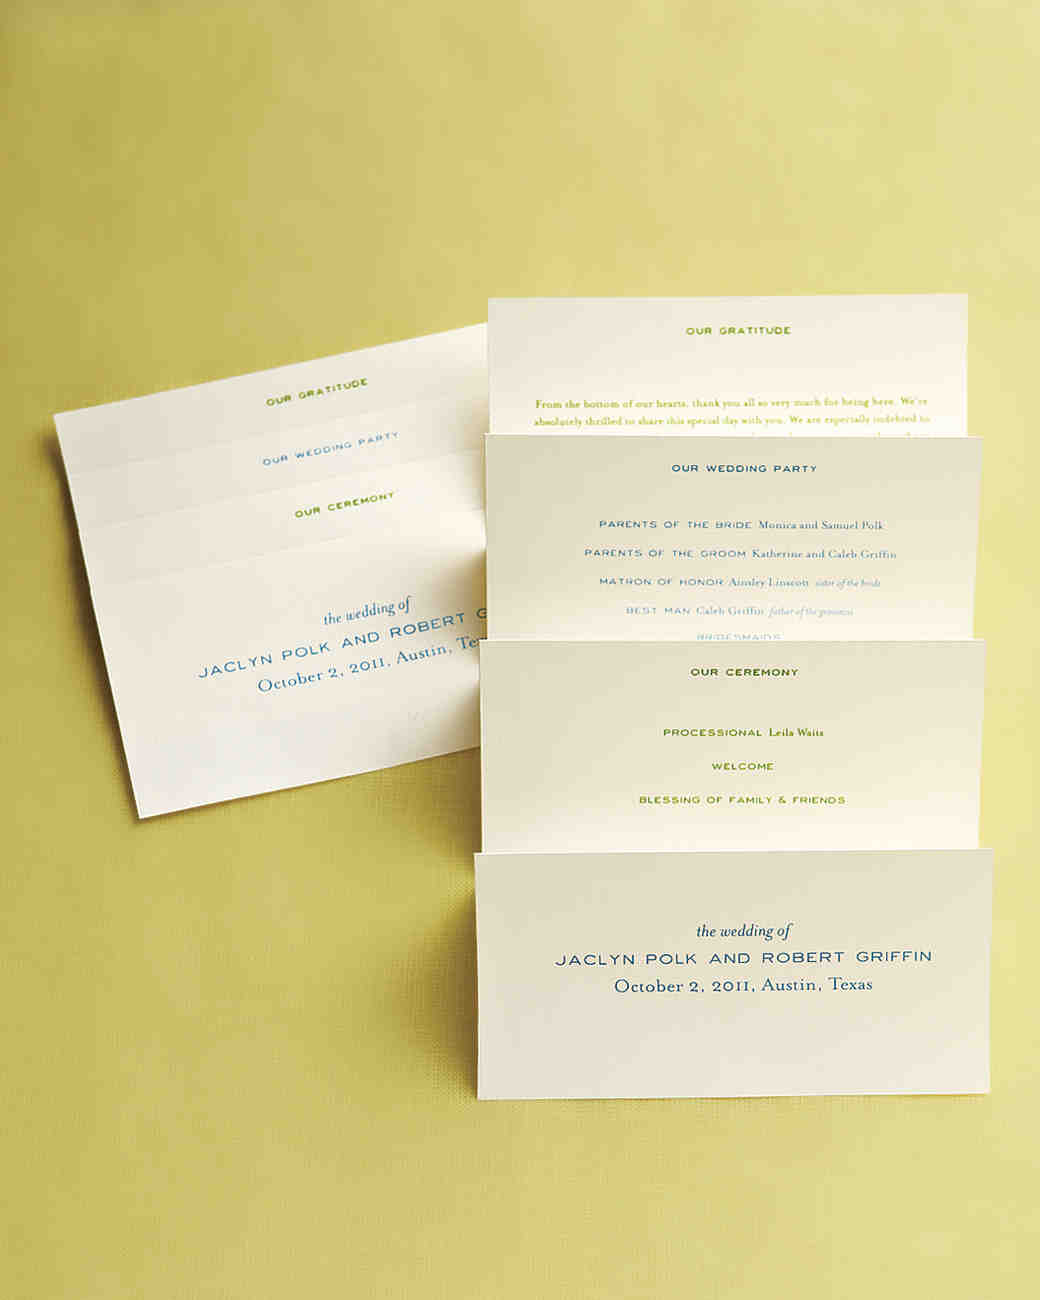 diy-wedding-ceremony-programs-mwd106511programs15-0515.jpg